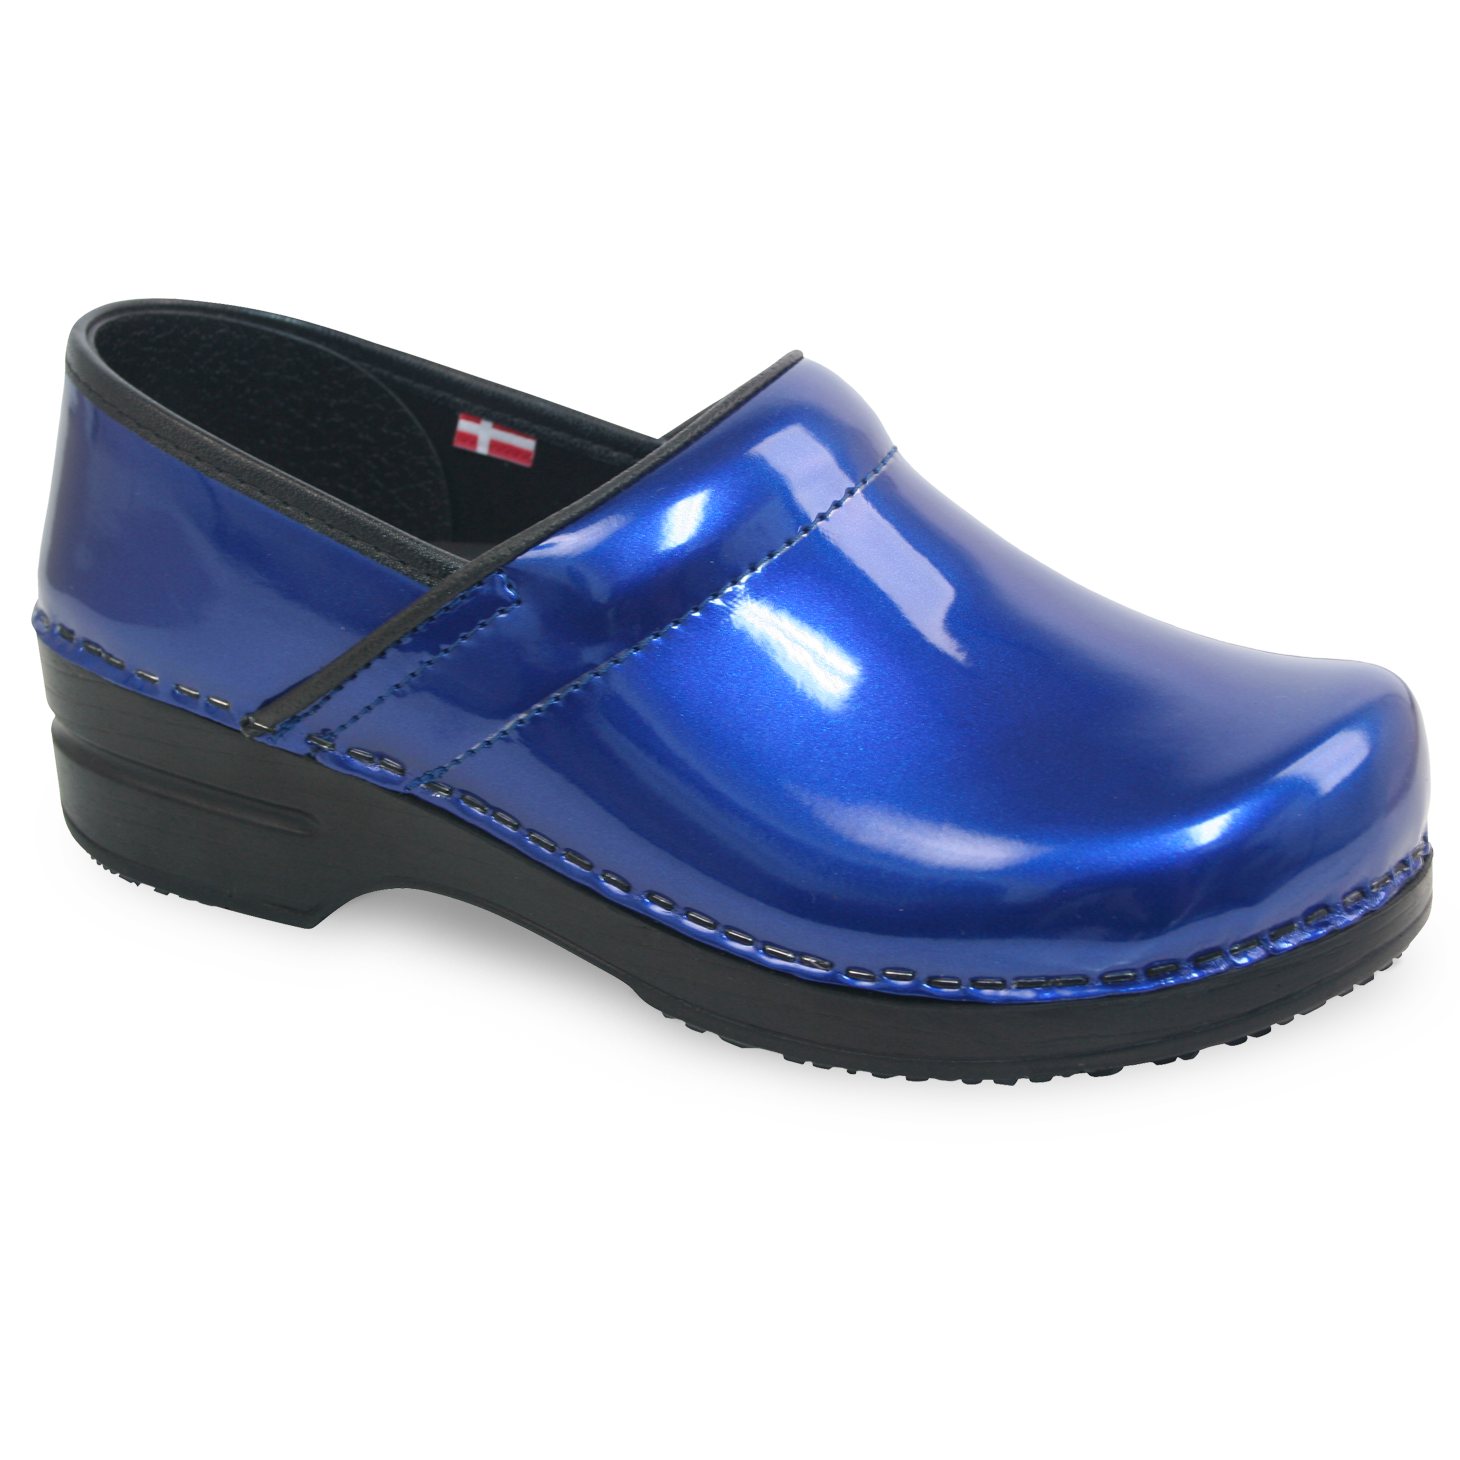 Sanita Sabel Women's in Blue Closed Back Clog